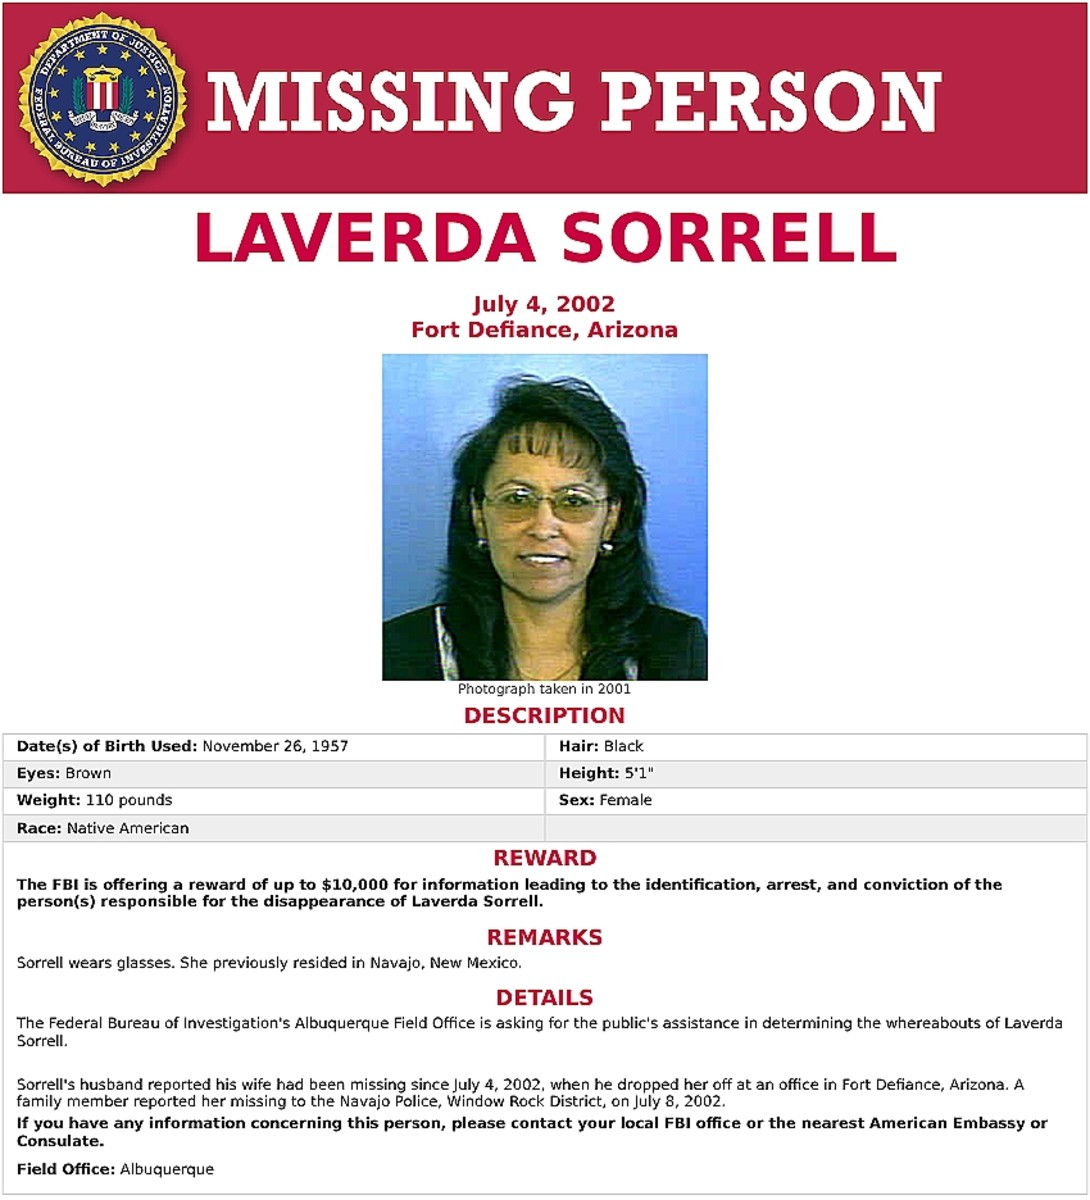 Pictured: Laverda Sorrell FBI missing person poster.